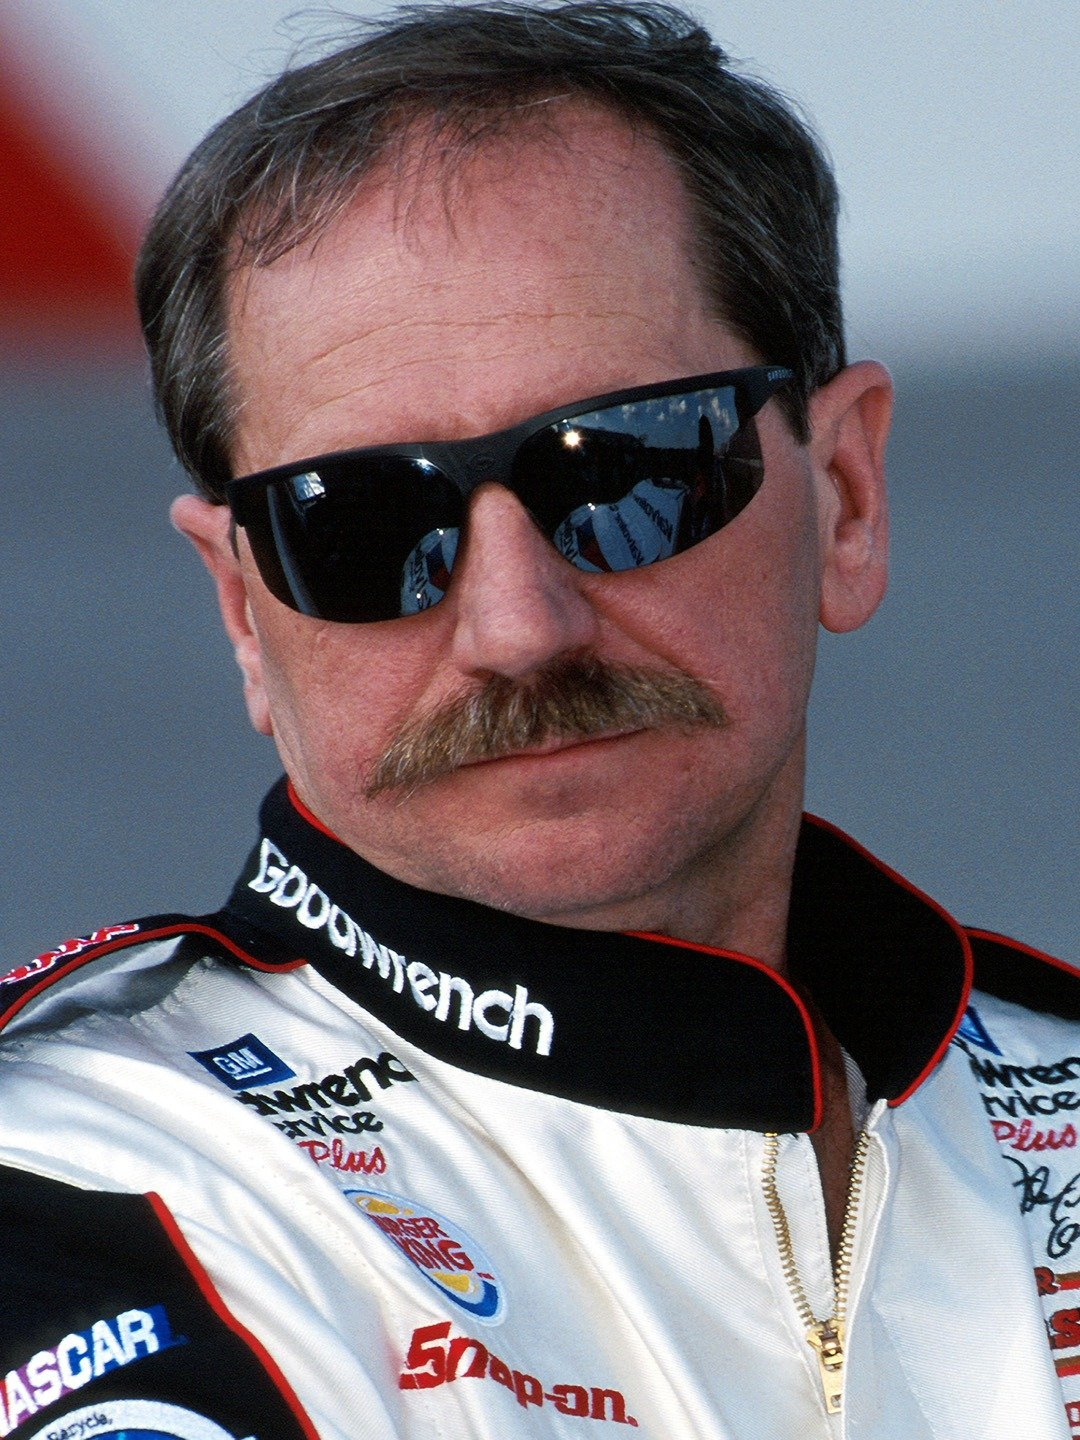 Dale Earnhardt holds his classic pose wearing his trademark sunglasses at Rockingham Internationa Speedway, February of 2000. (Newscom TagID: iconphotos258988.jpg) [Photo via Newscom]